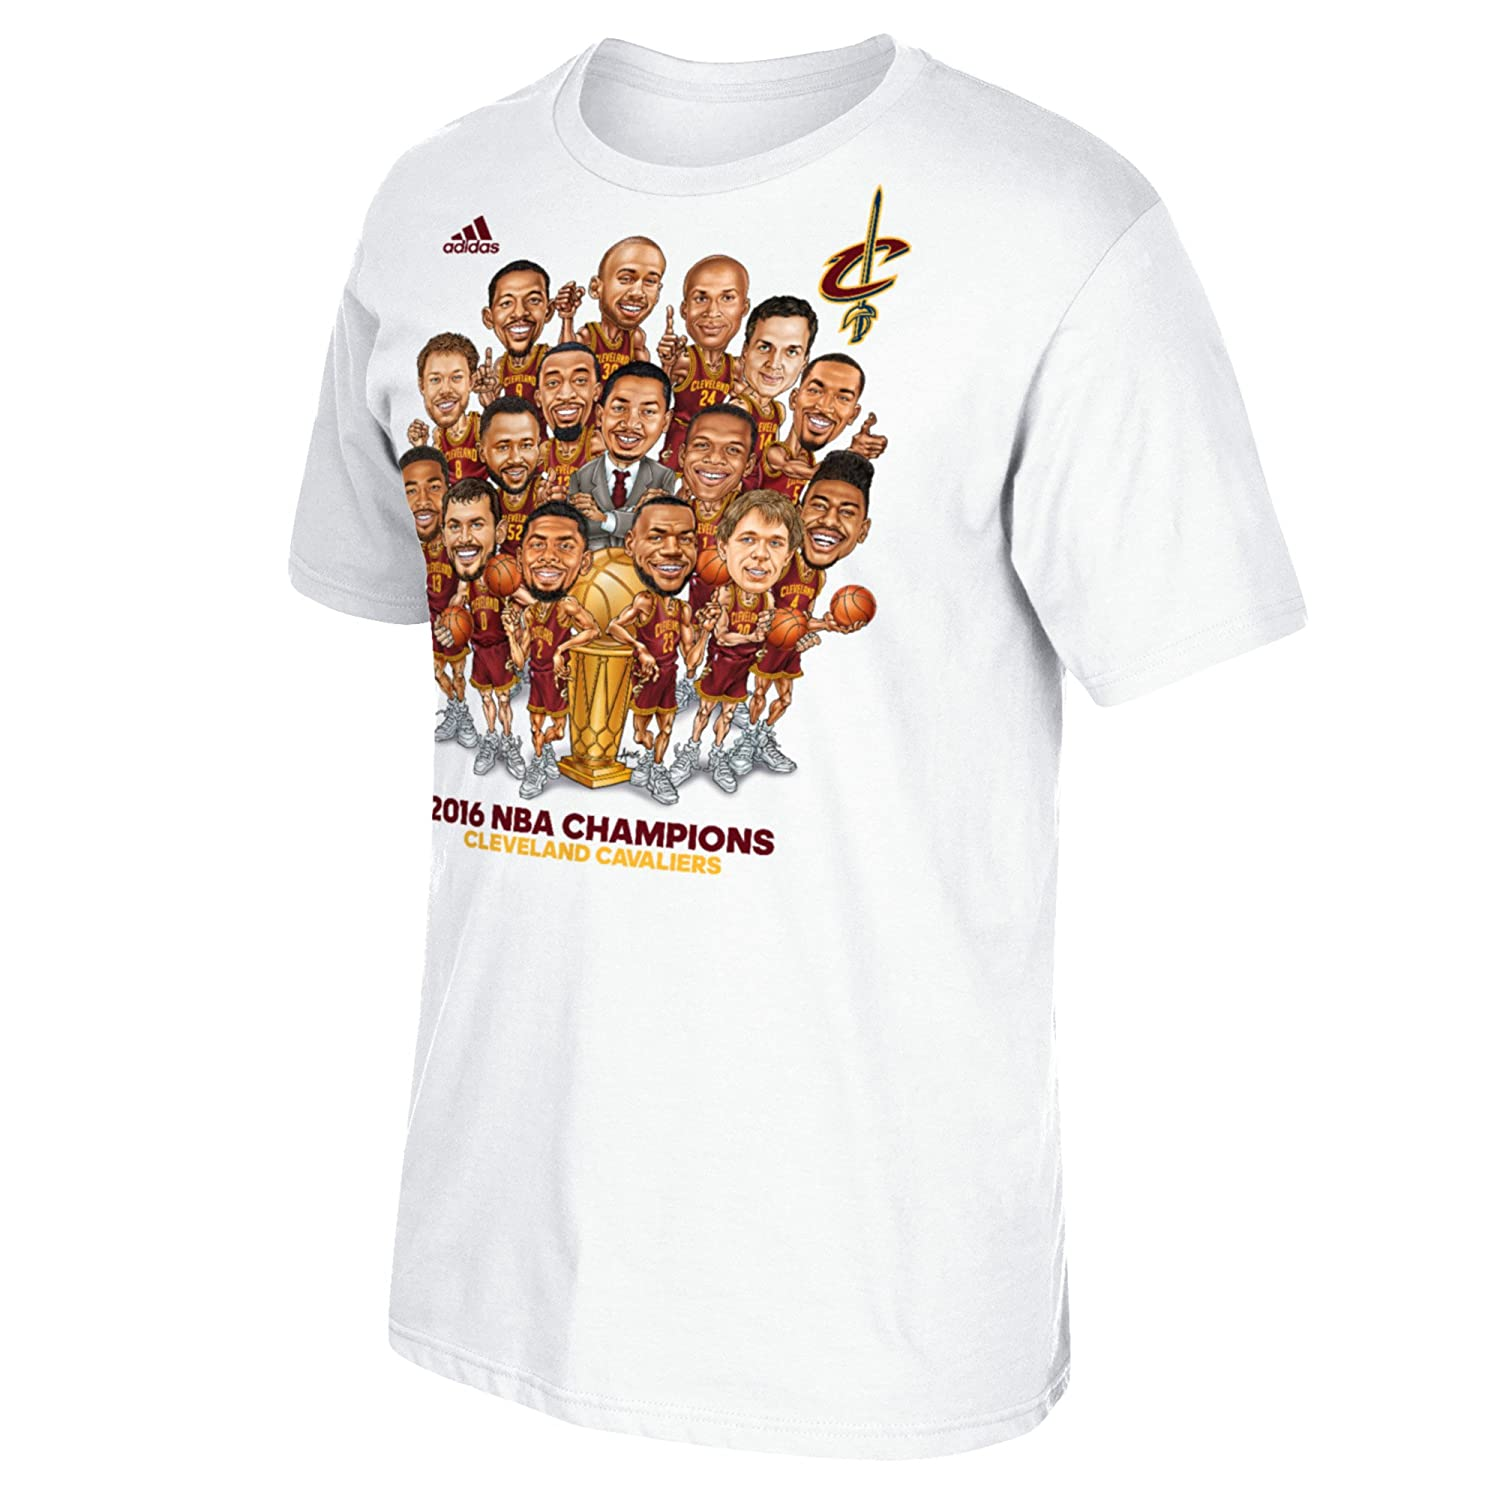 70c52b8098c8 Amazon.com   adidas Cleveland Cavaliers White 2016 NBA Finals Champions  Cartoon Caricature Champs T-shirt 4XL   Sports   Outdoors